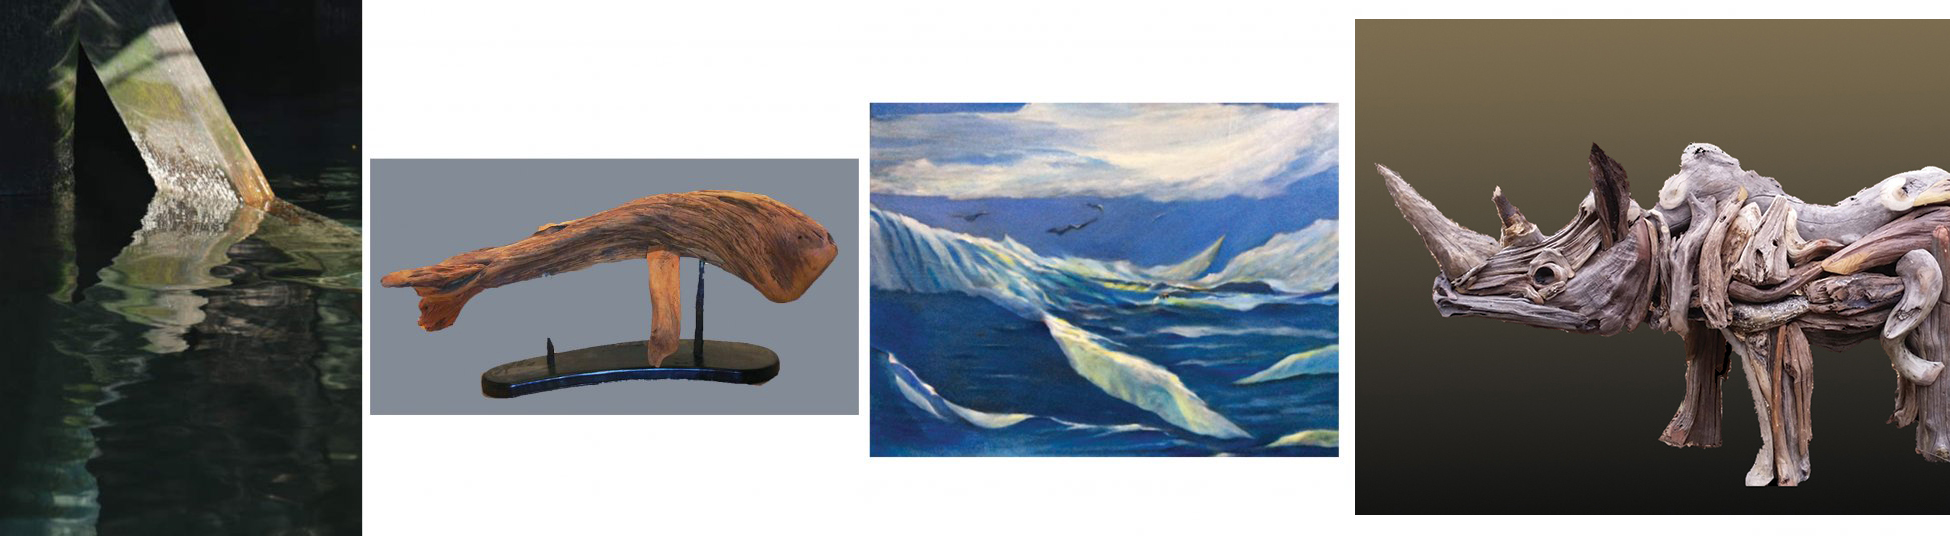 Endangered, sculpture by Larry Ringgold and paintings by Nancy Nesvet